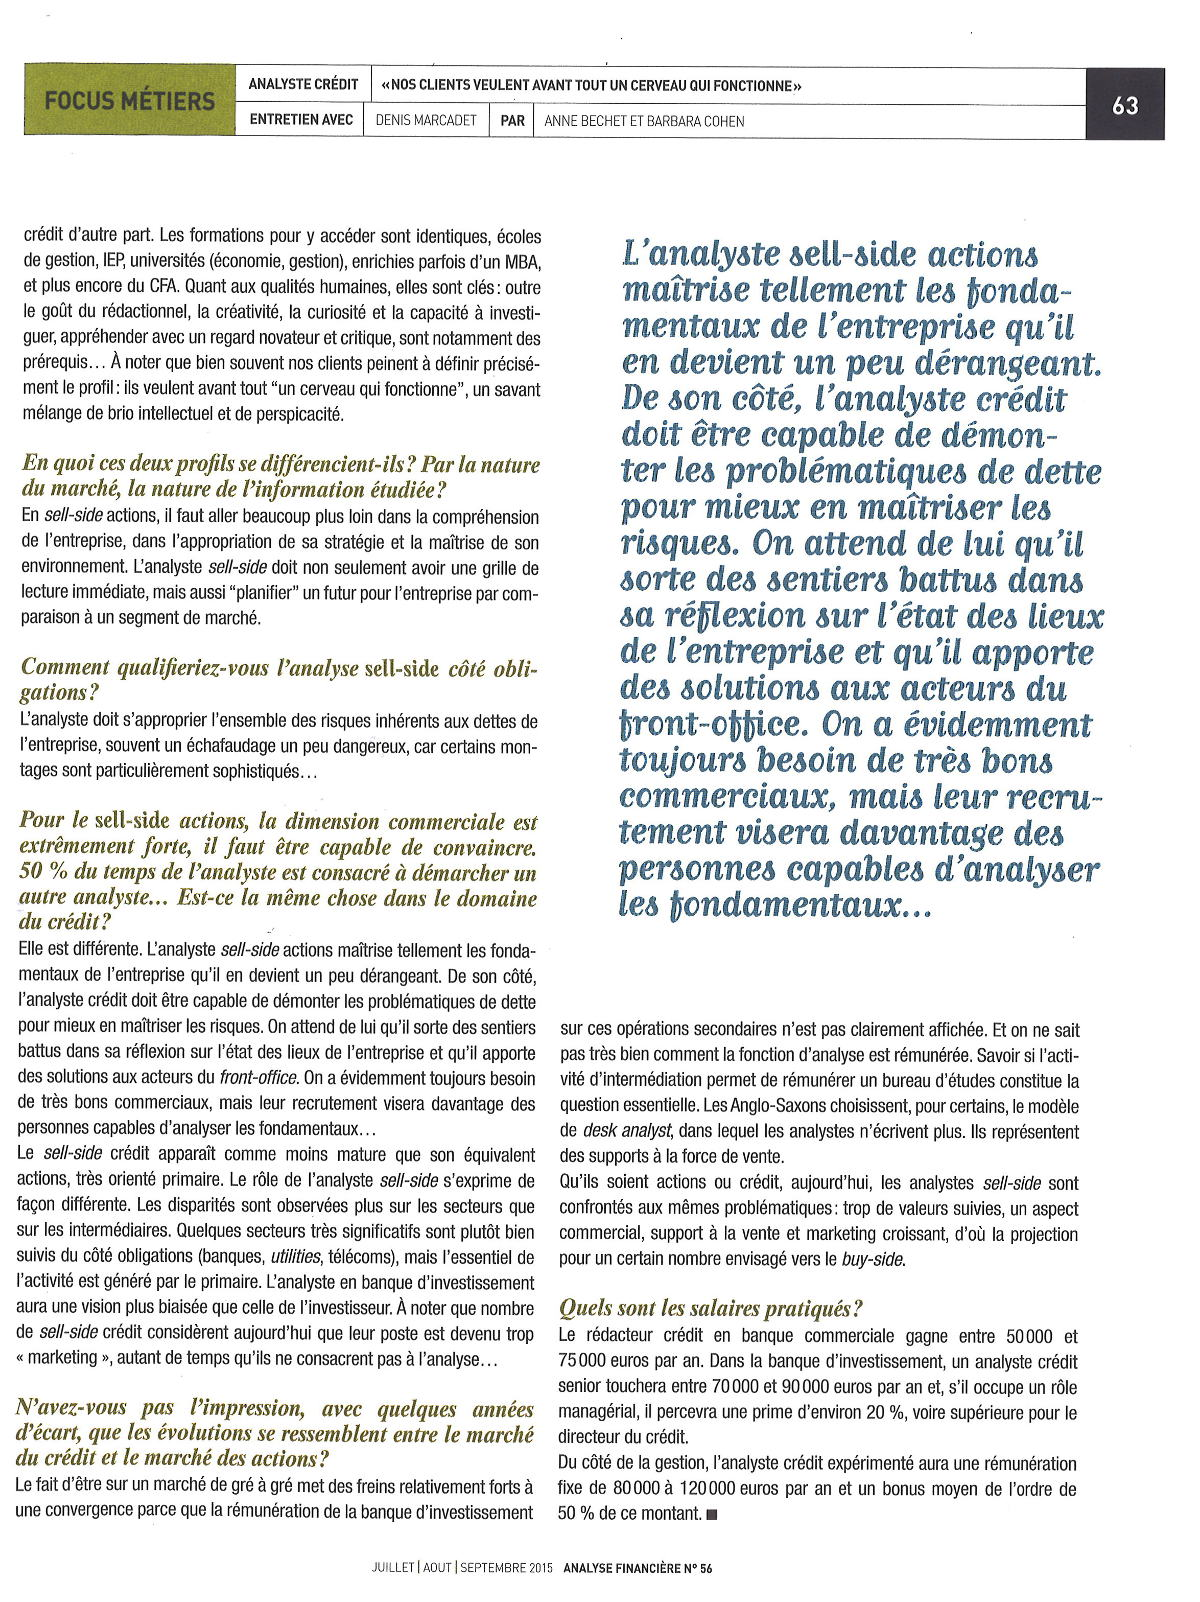 SFAF_AnalistesCredit _revue analyse financière